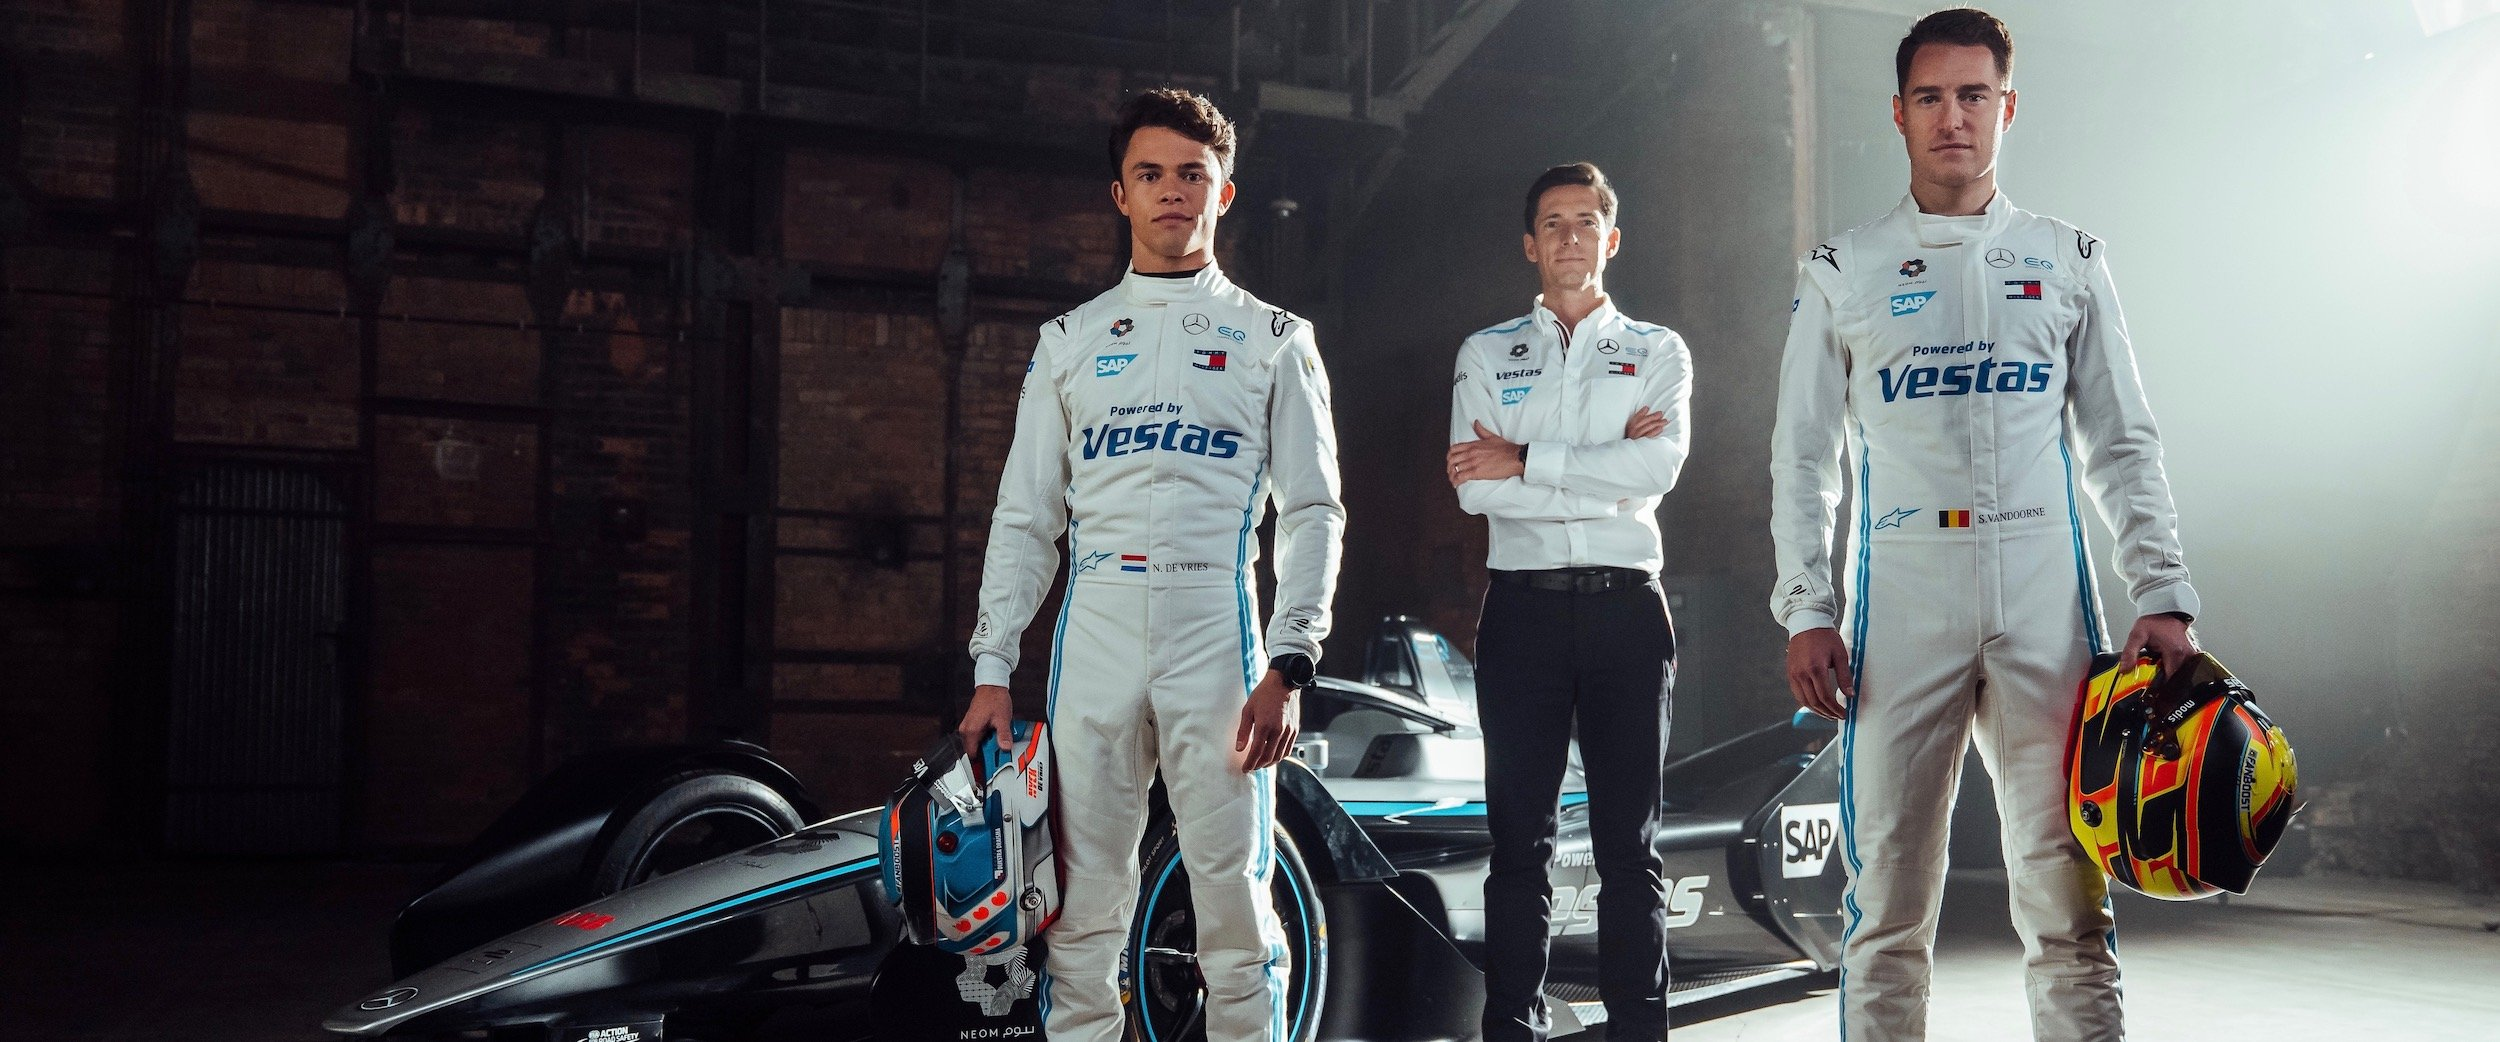 Ian James, Nyck de Vries and Stoffel Vandoorne standing in front of the race car